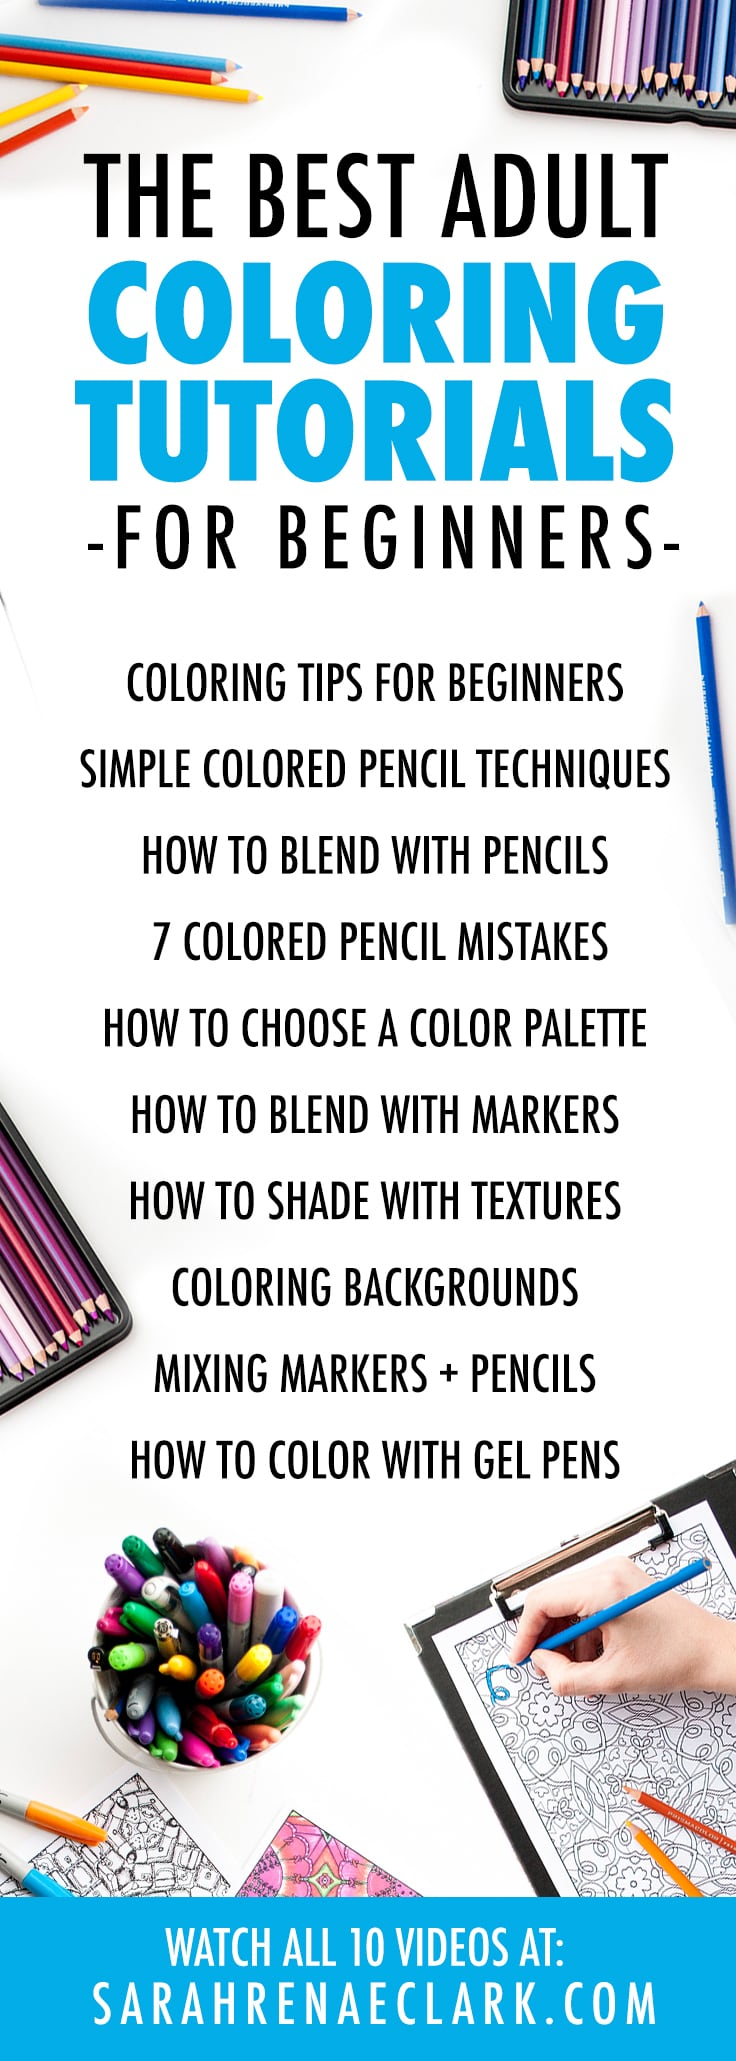 the 10 best adult coloring tutorials for beginners - sarah